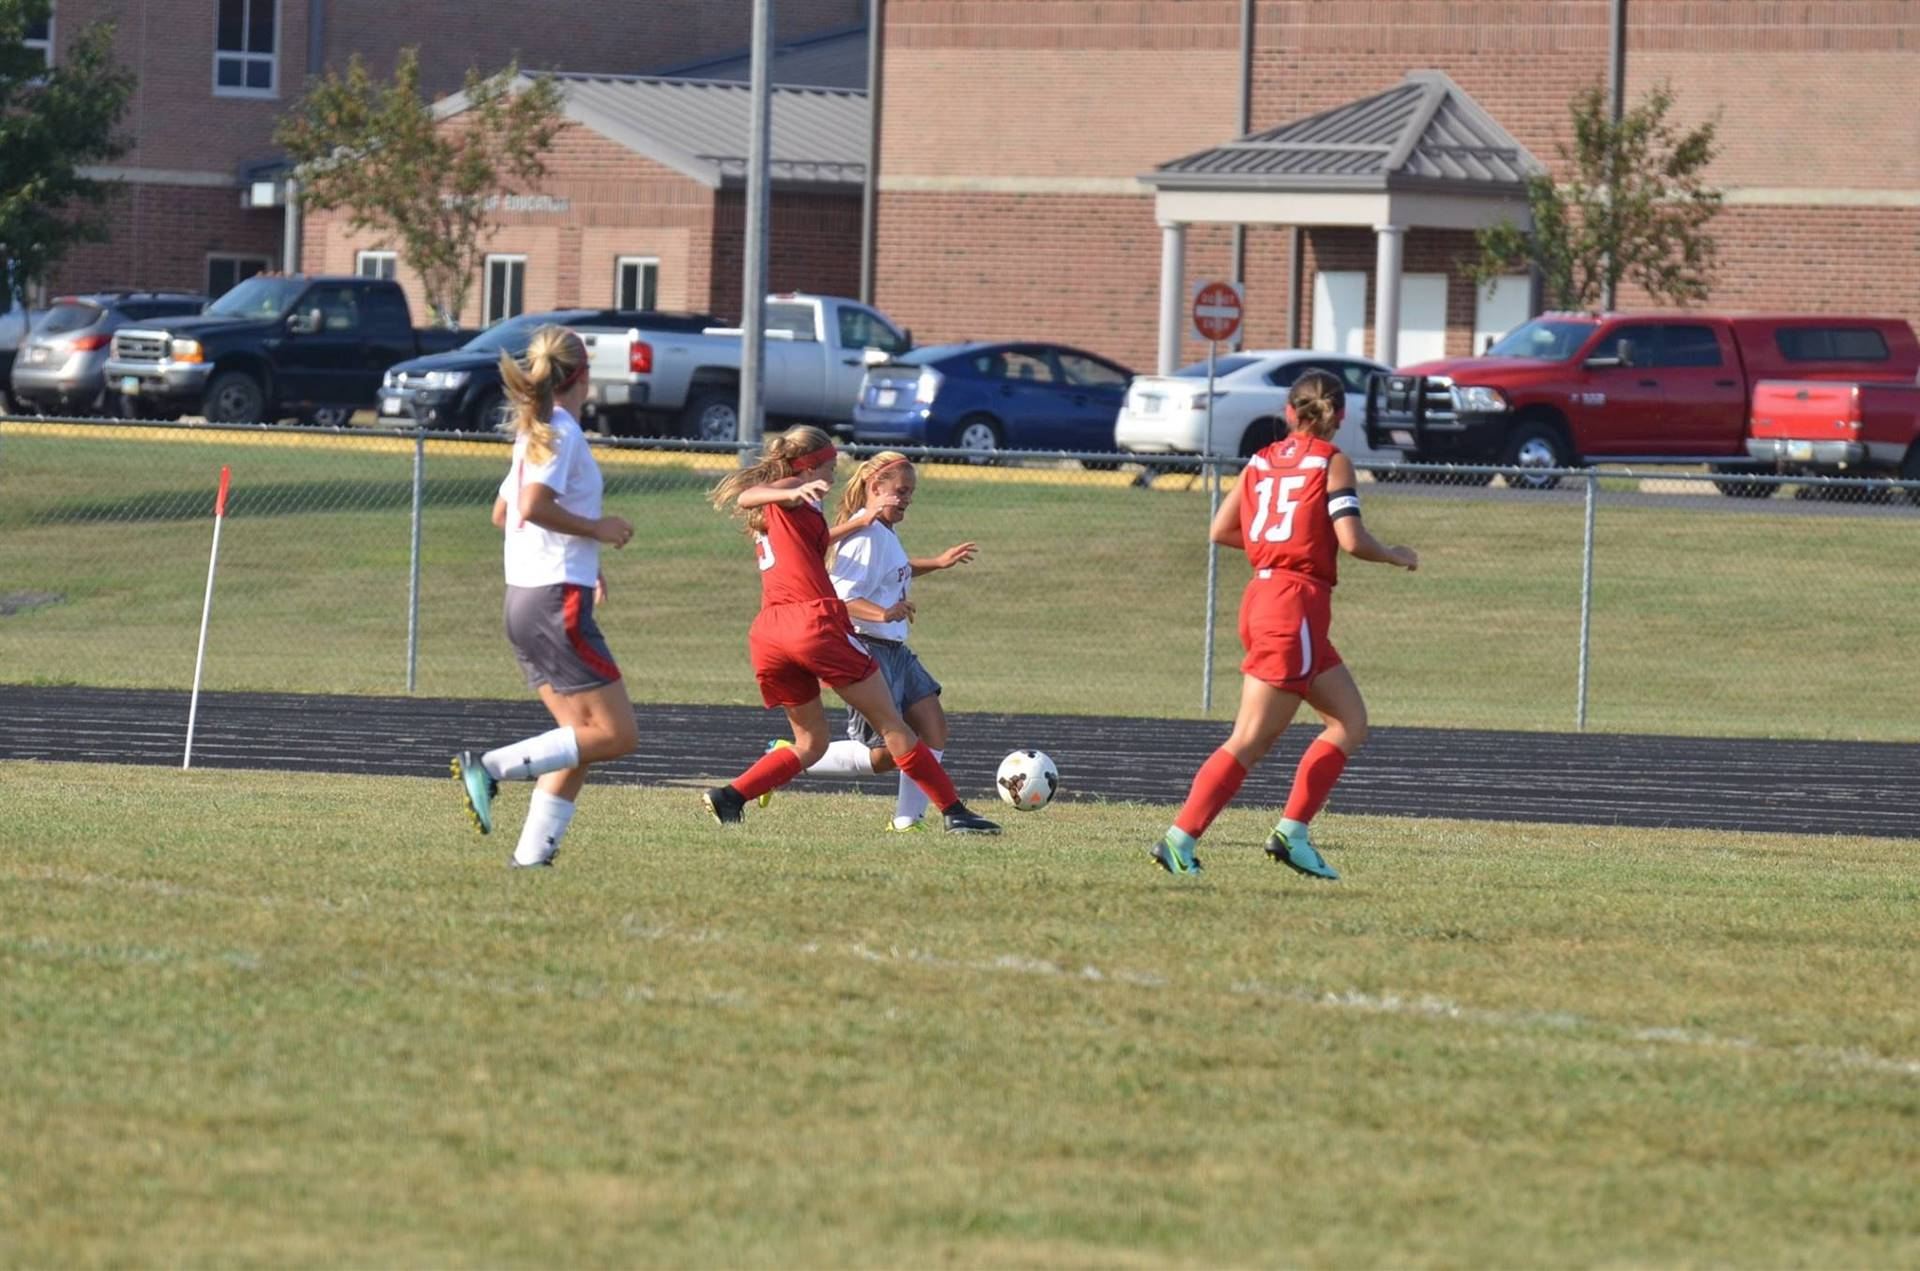 Breanna Eick going in for a goal kick.